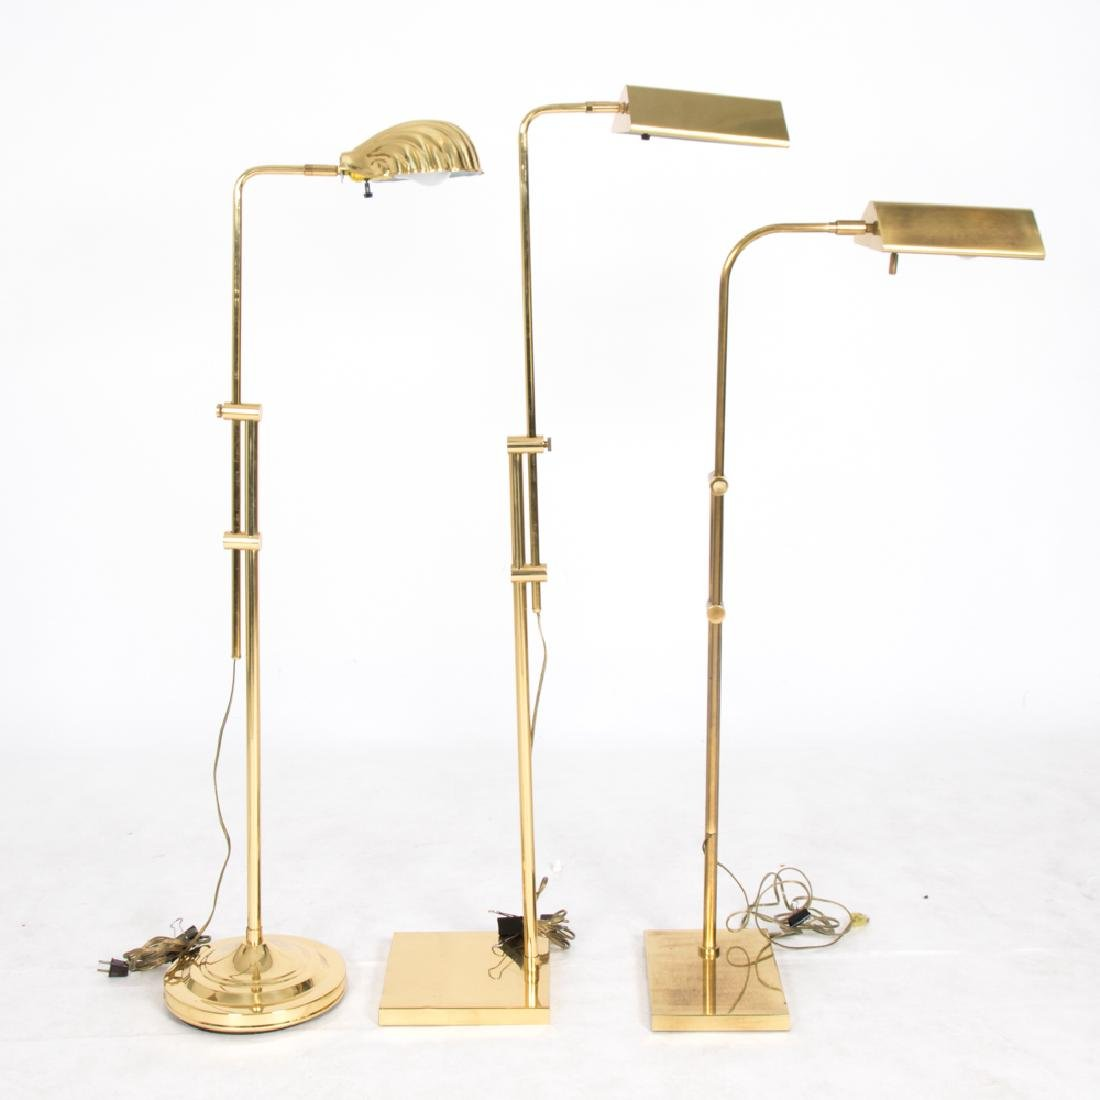 A Group of Three Brass Adjustable Floor Lamps, 20th